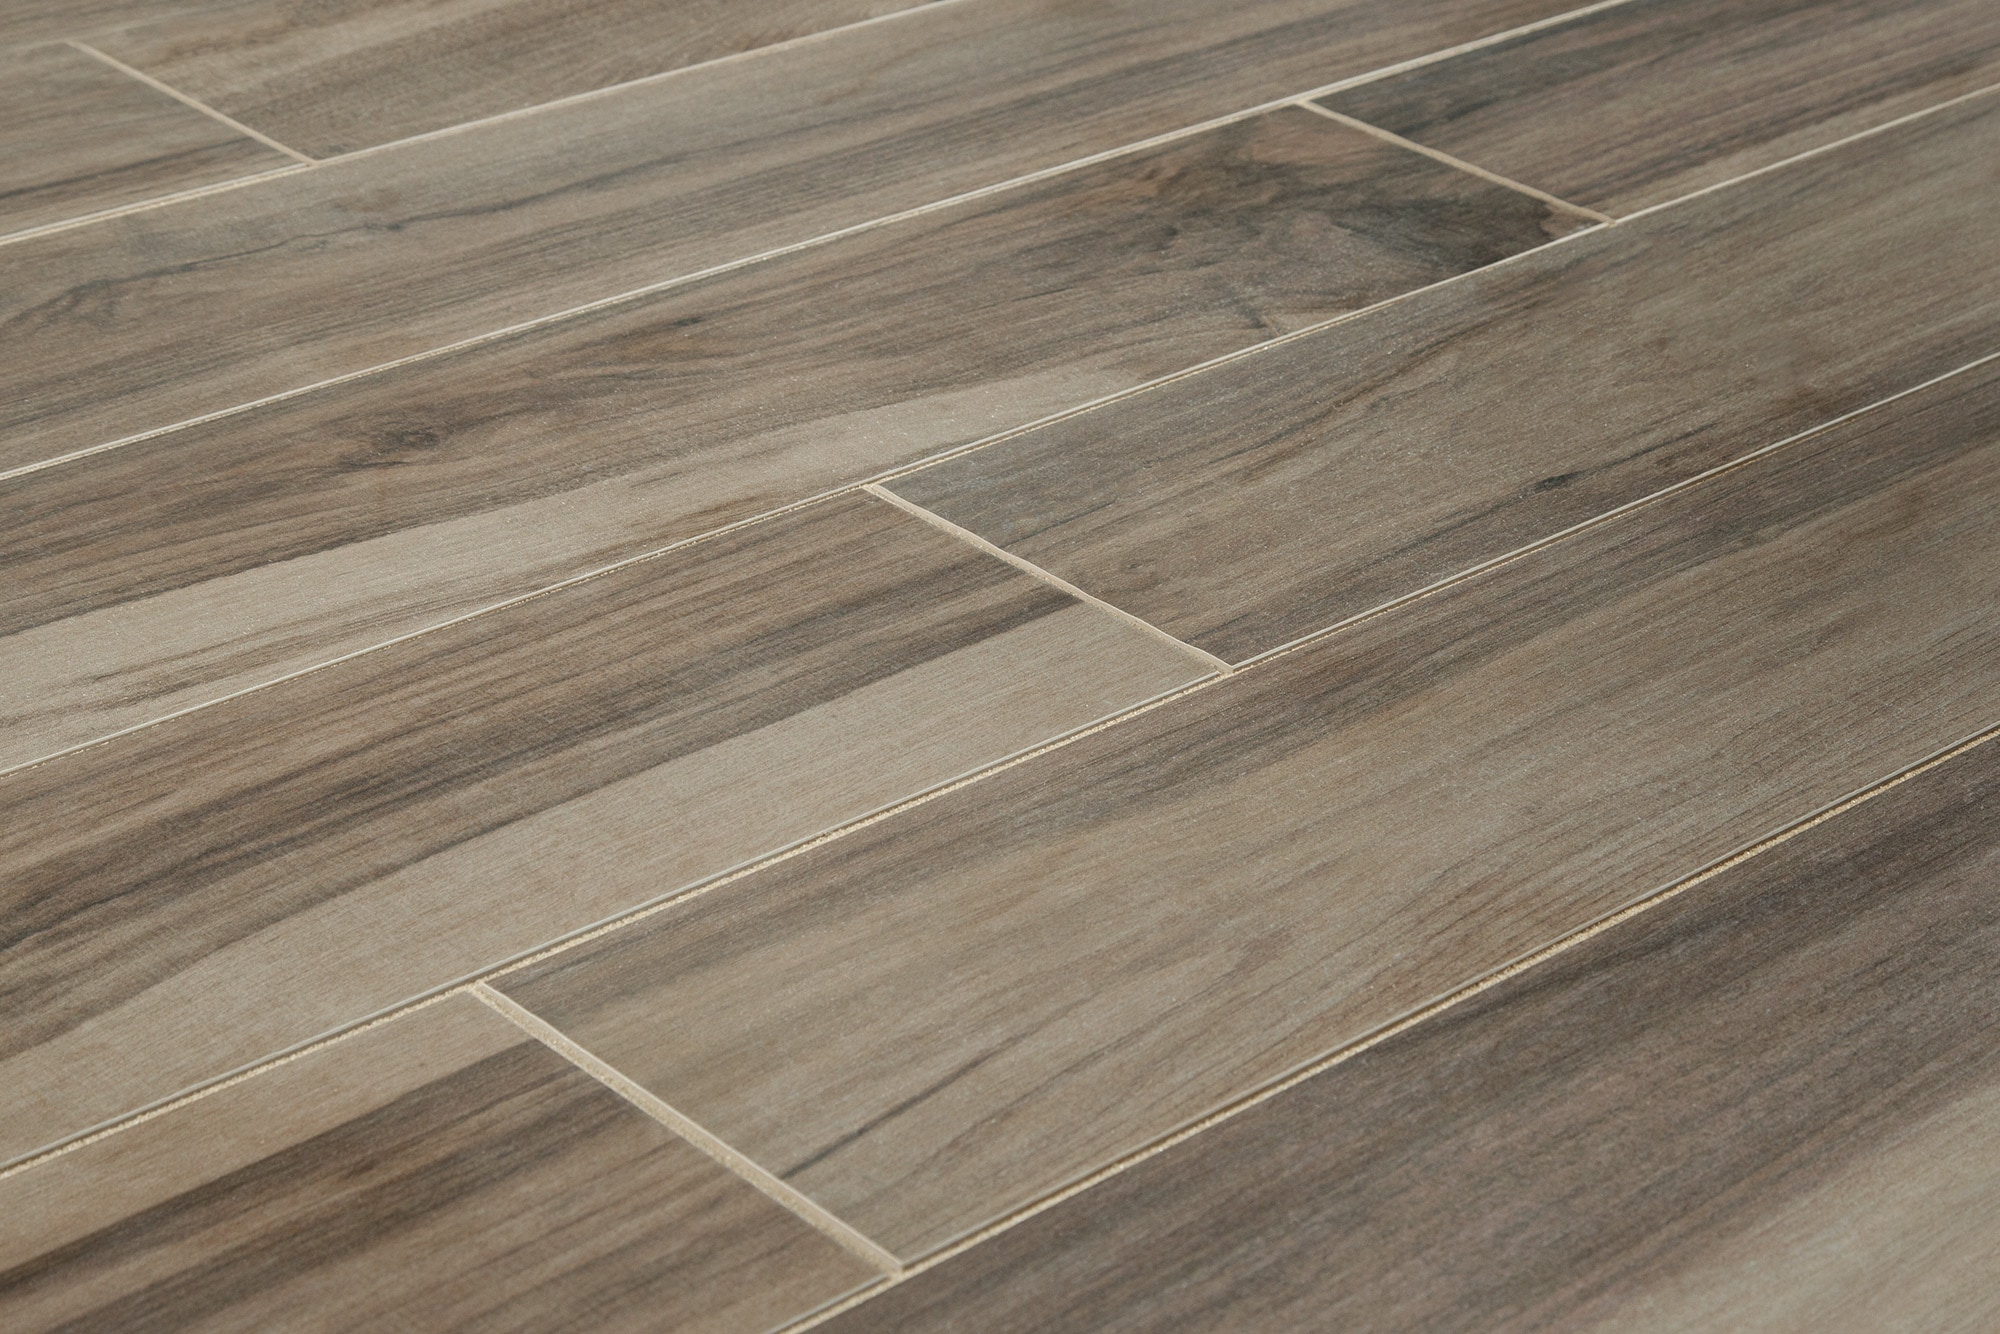 Wood grain floor tiles